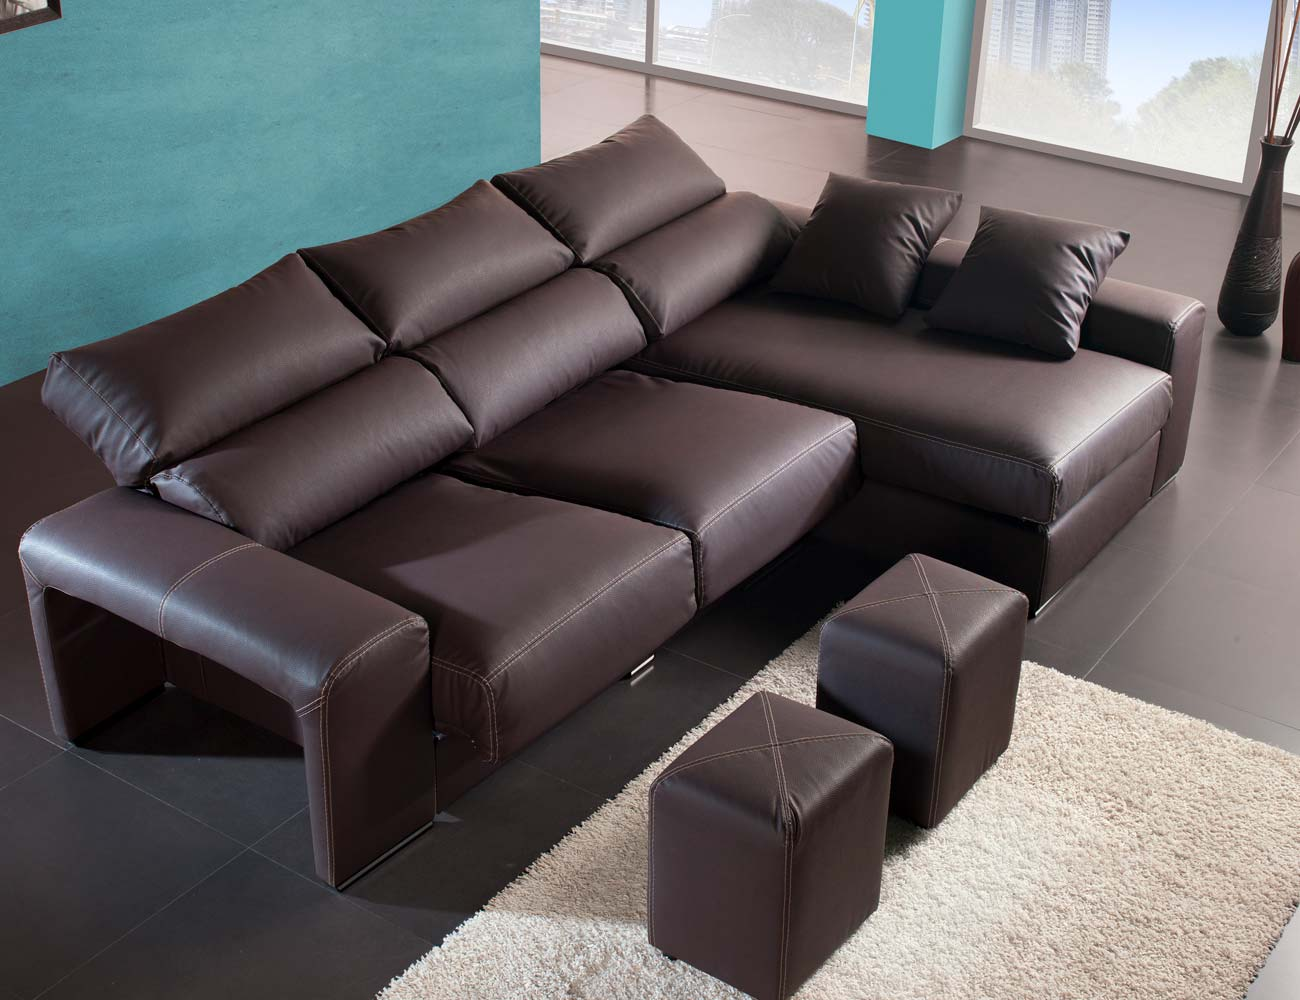 Sofa chaiselongue moderno polipiel chocolate poufs taburetes25